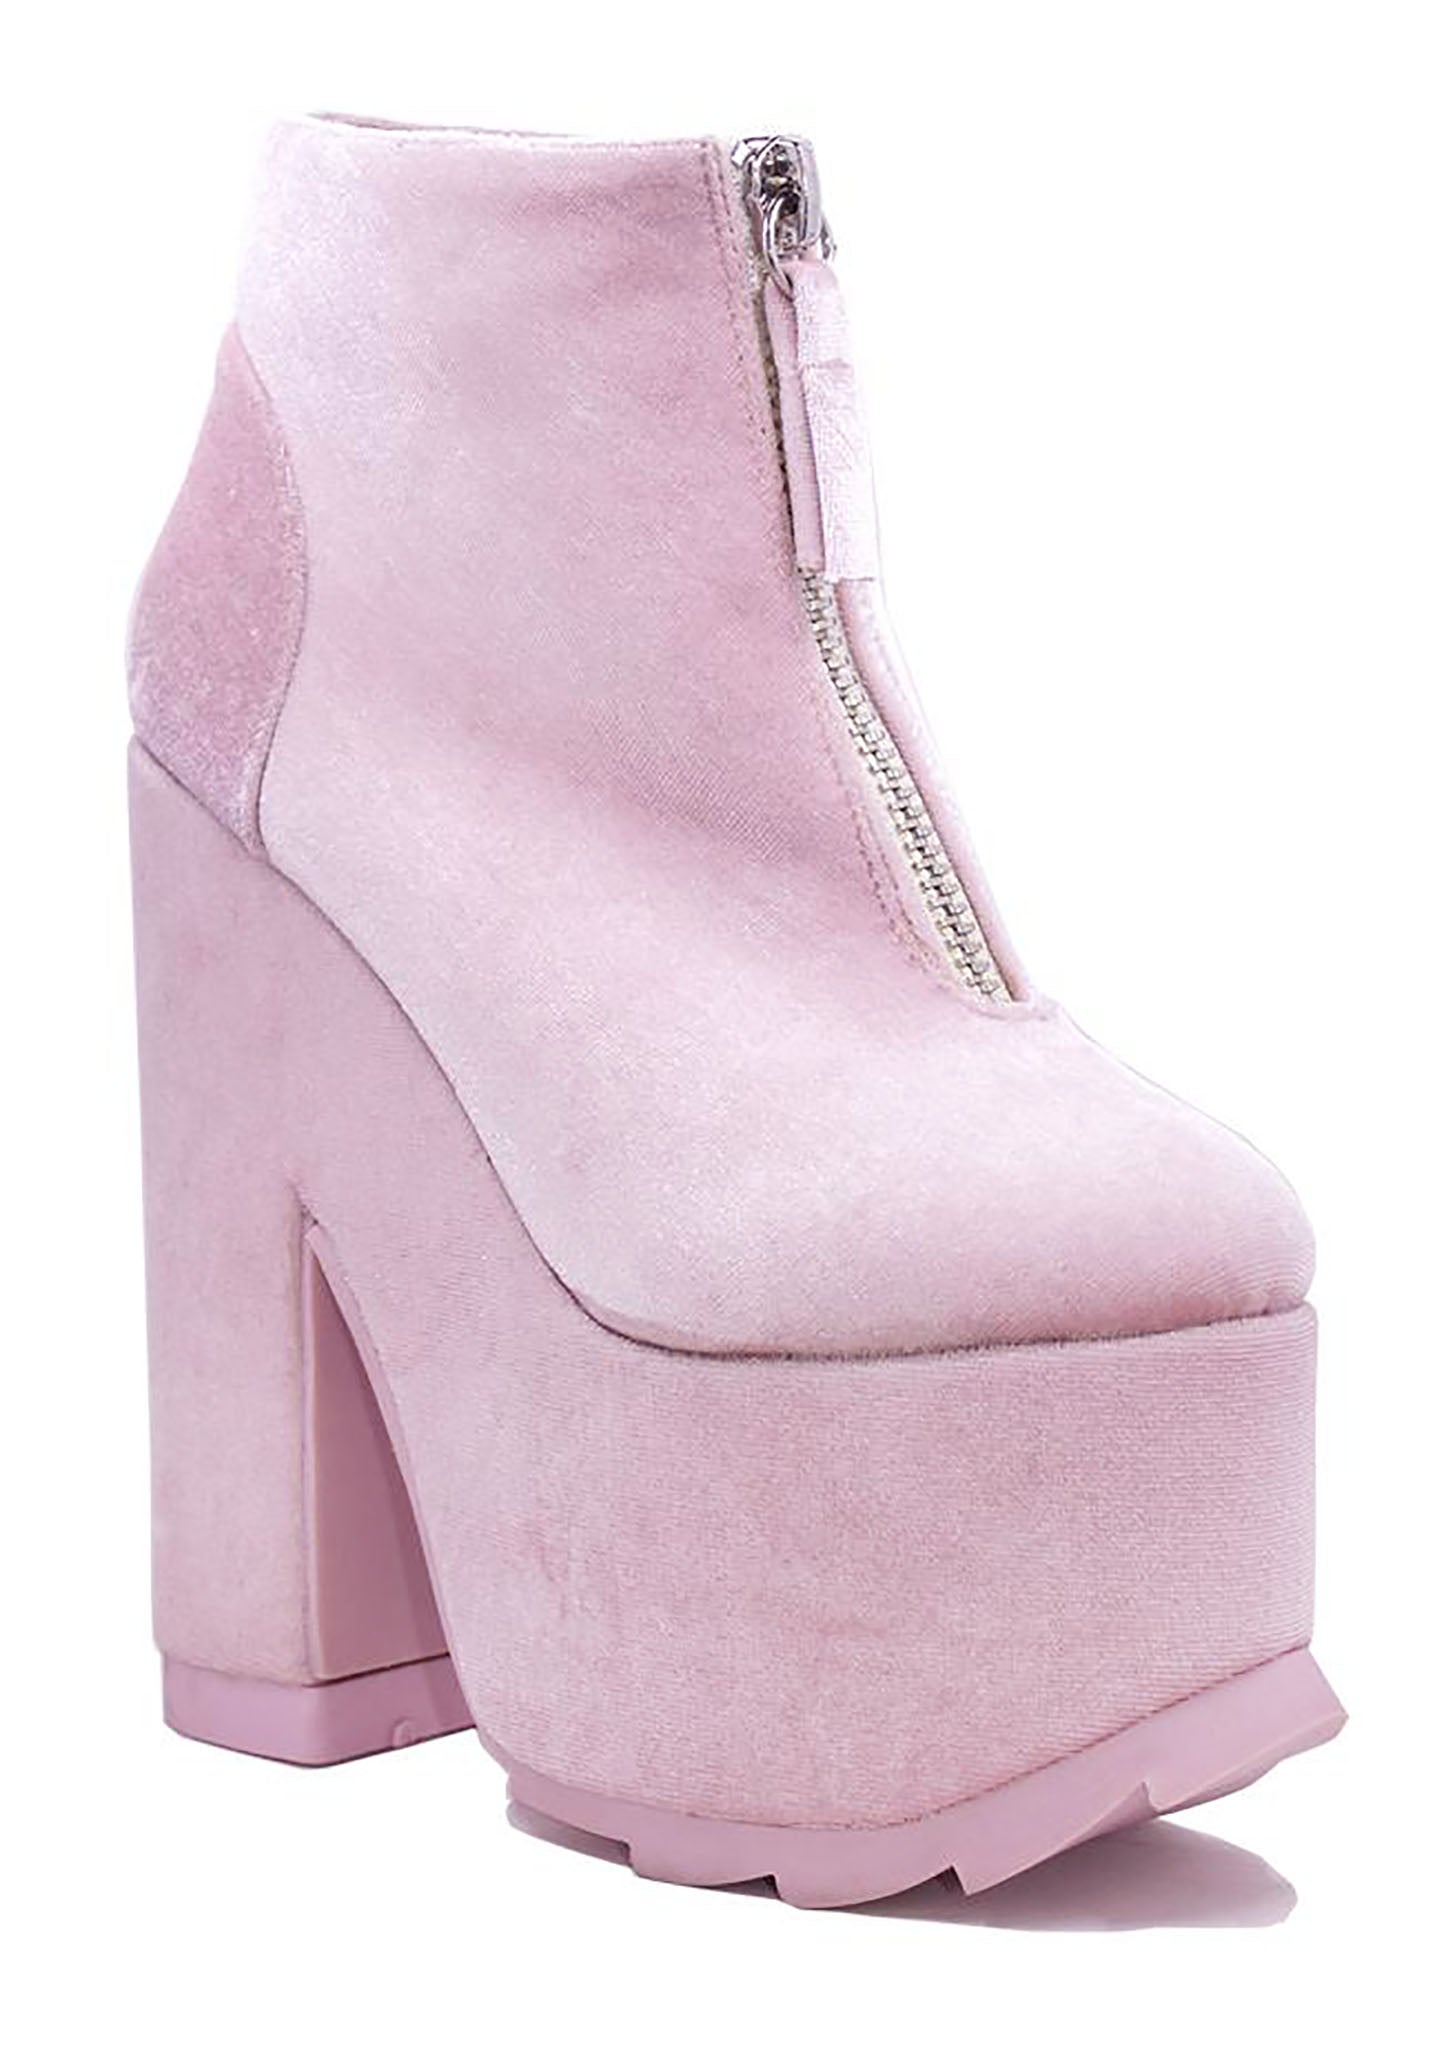 b22bd207d306d Y.R.U. | Shop Y.R.U. Nightmare Boots in Pink Velvet at LAStyleRush ...